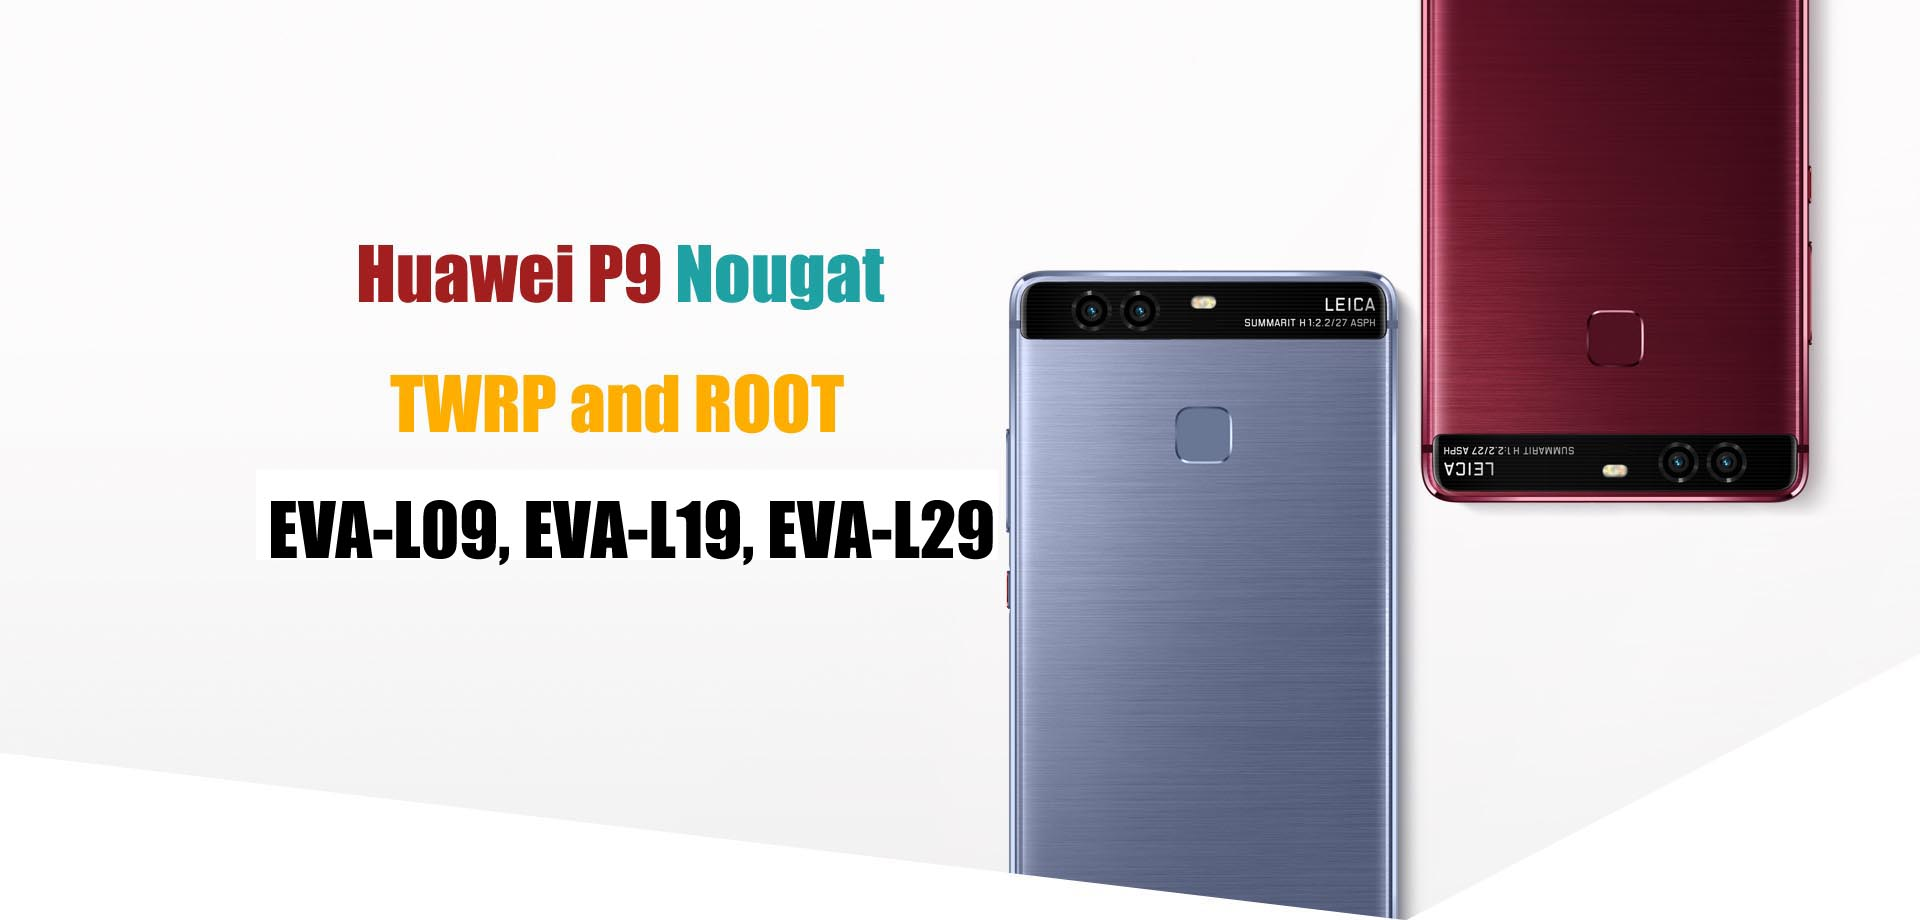 Huawei P9 Root for Nougat Android 7 0 - Ministry Of Solutions